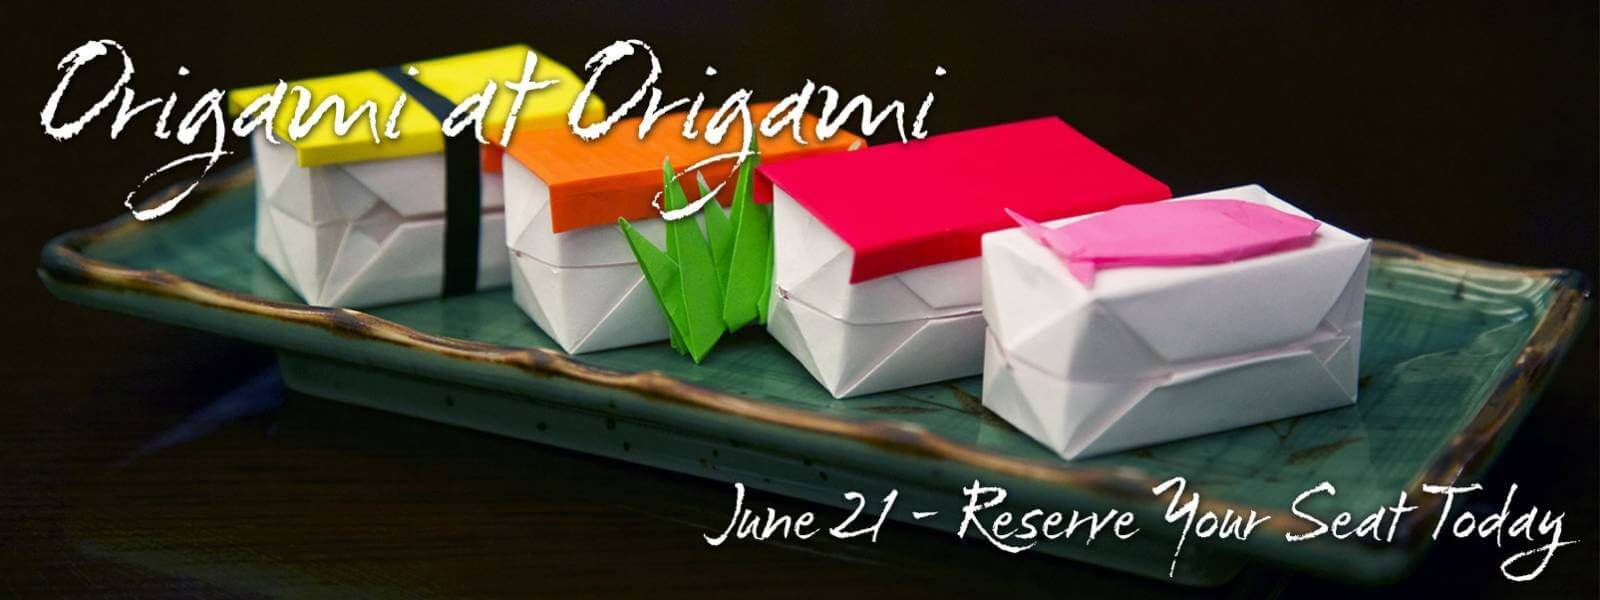 Learn Origami at Origami June 21